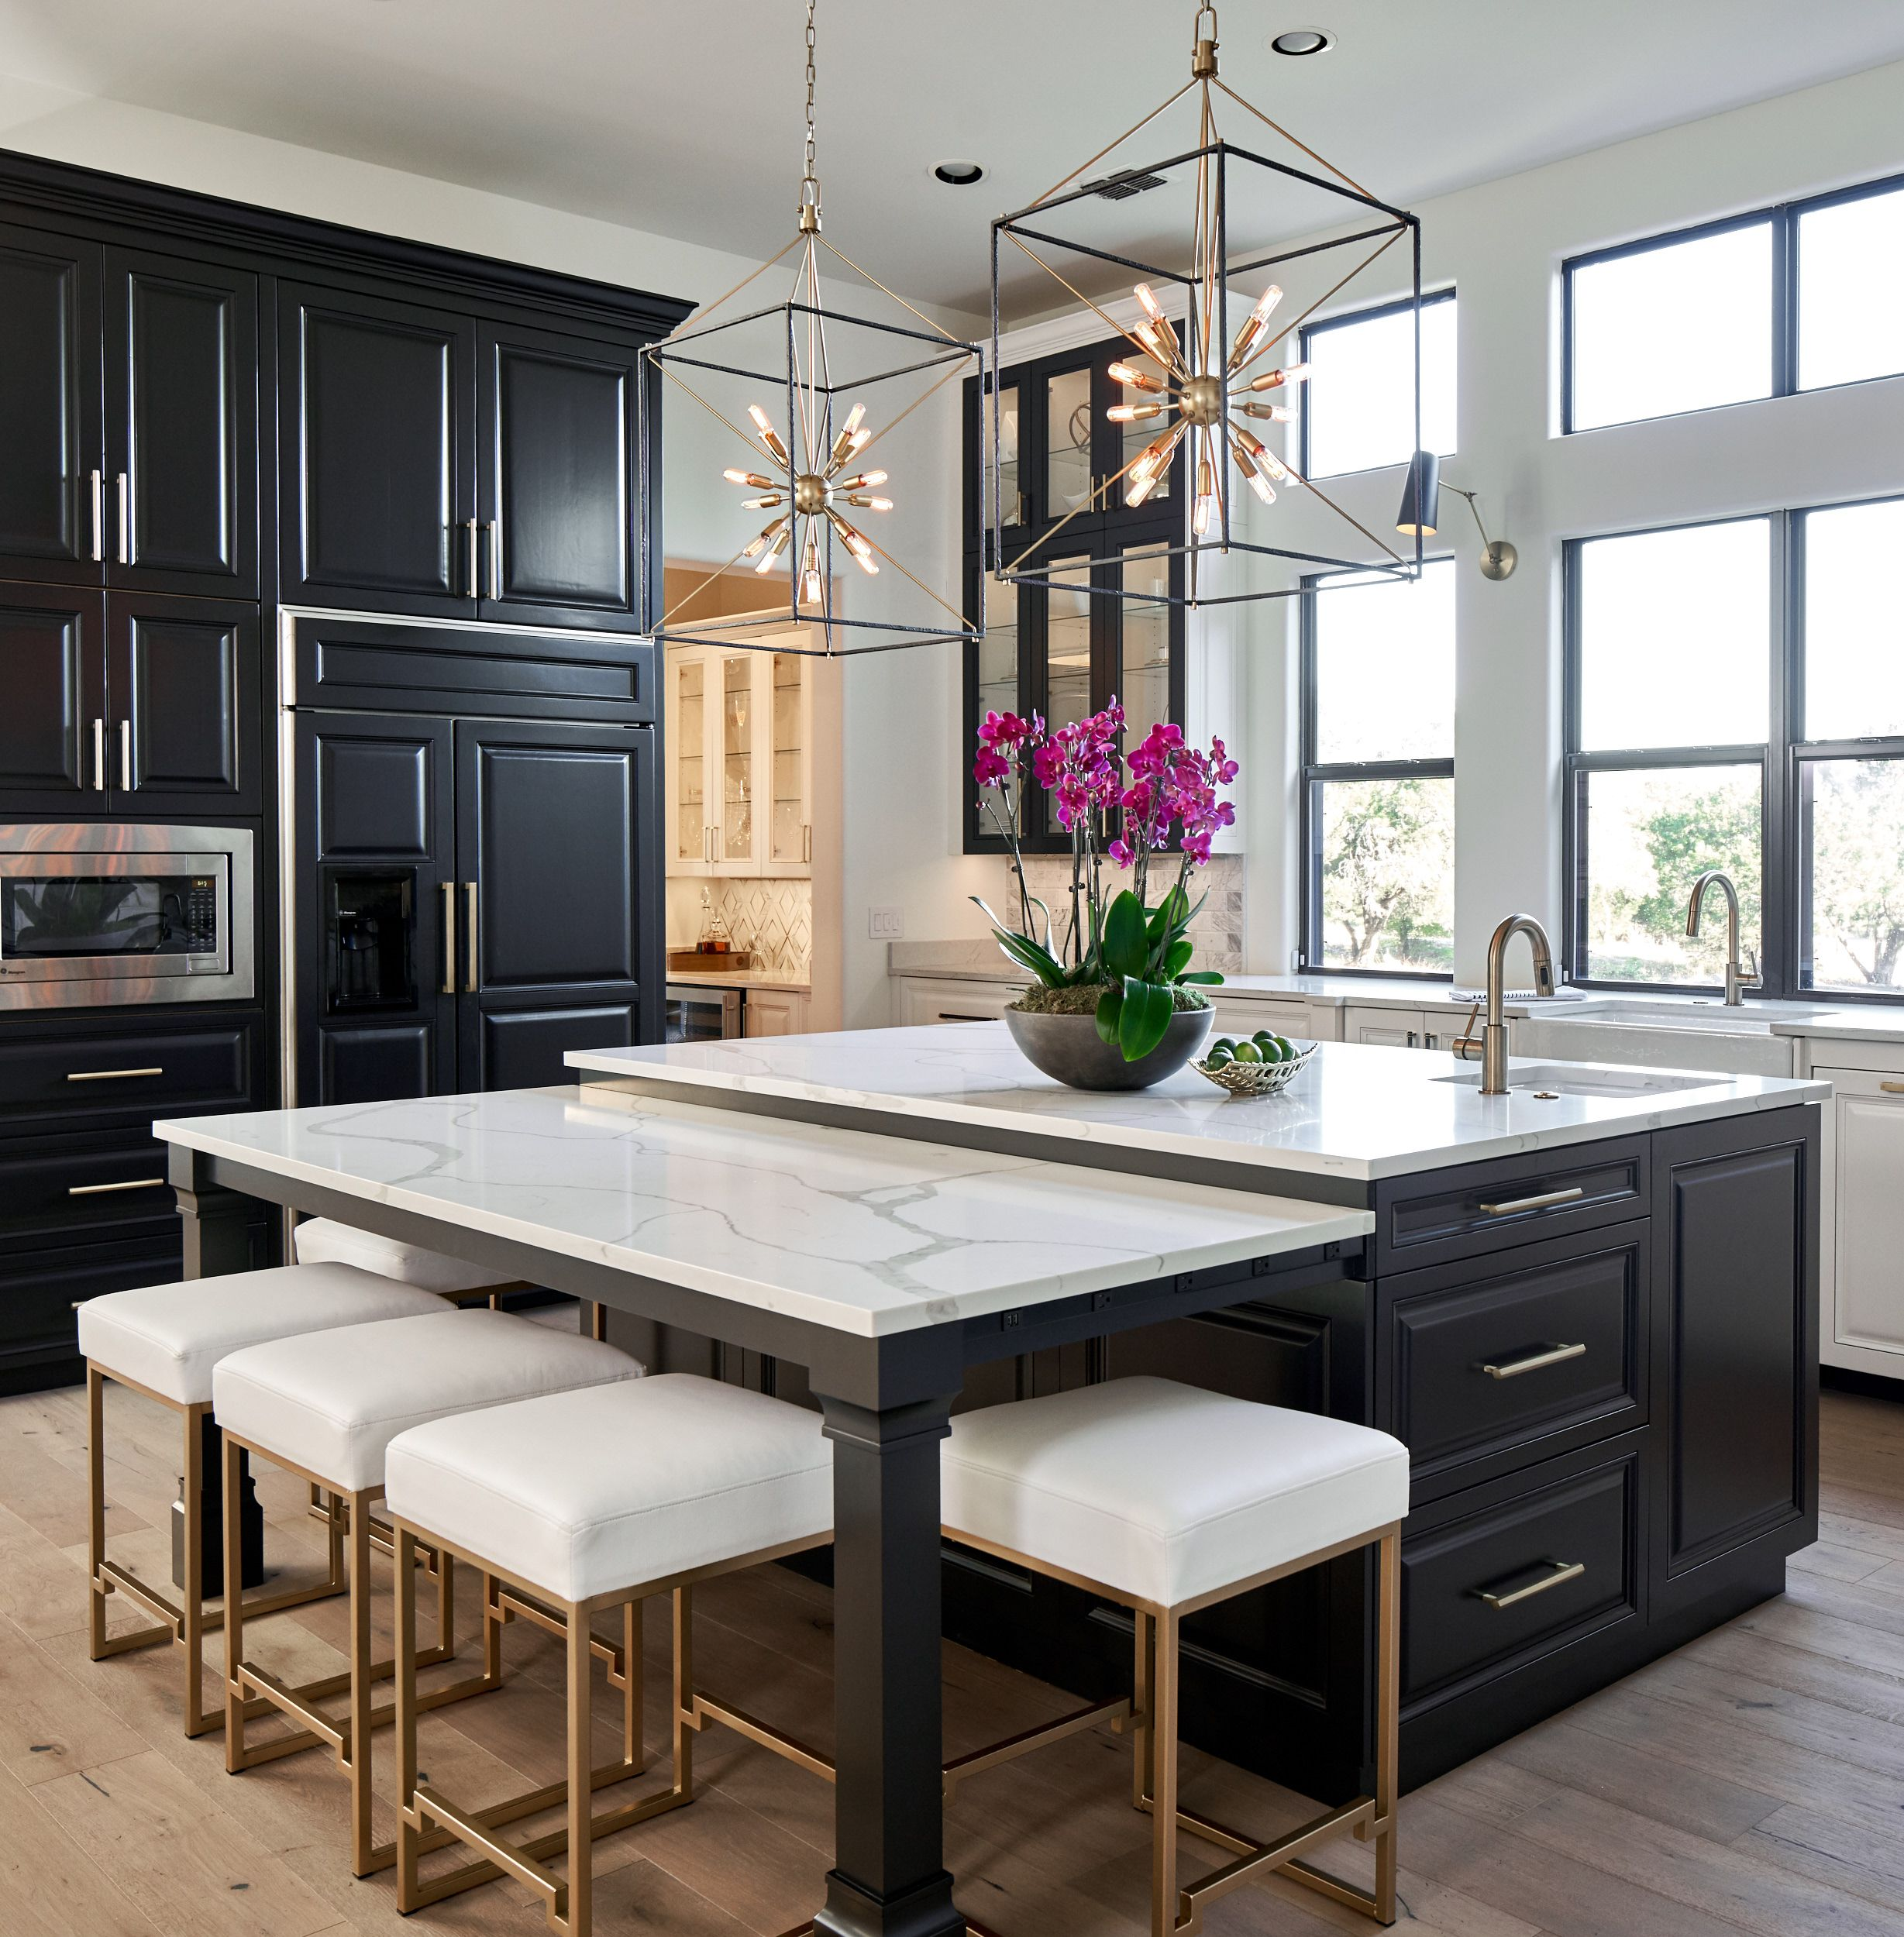 Best Black White And Gold Transitional Kitchen With European 640 x 480